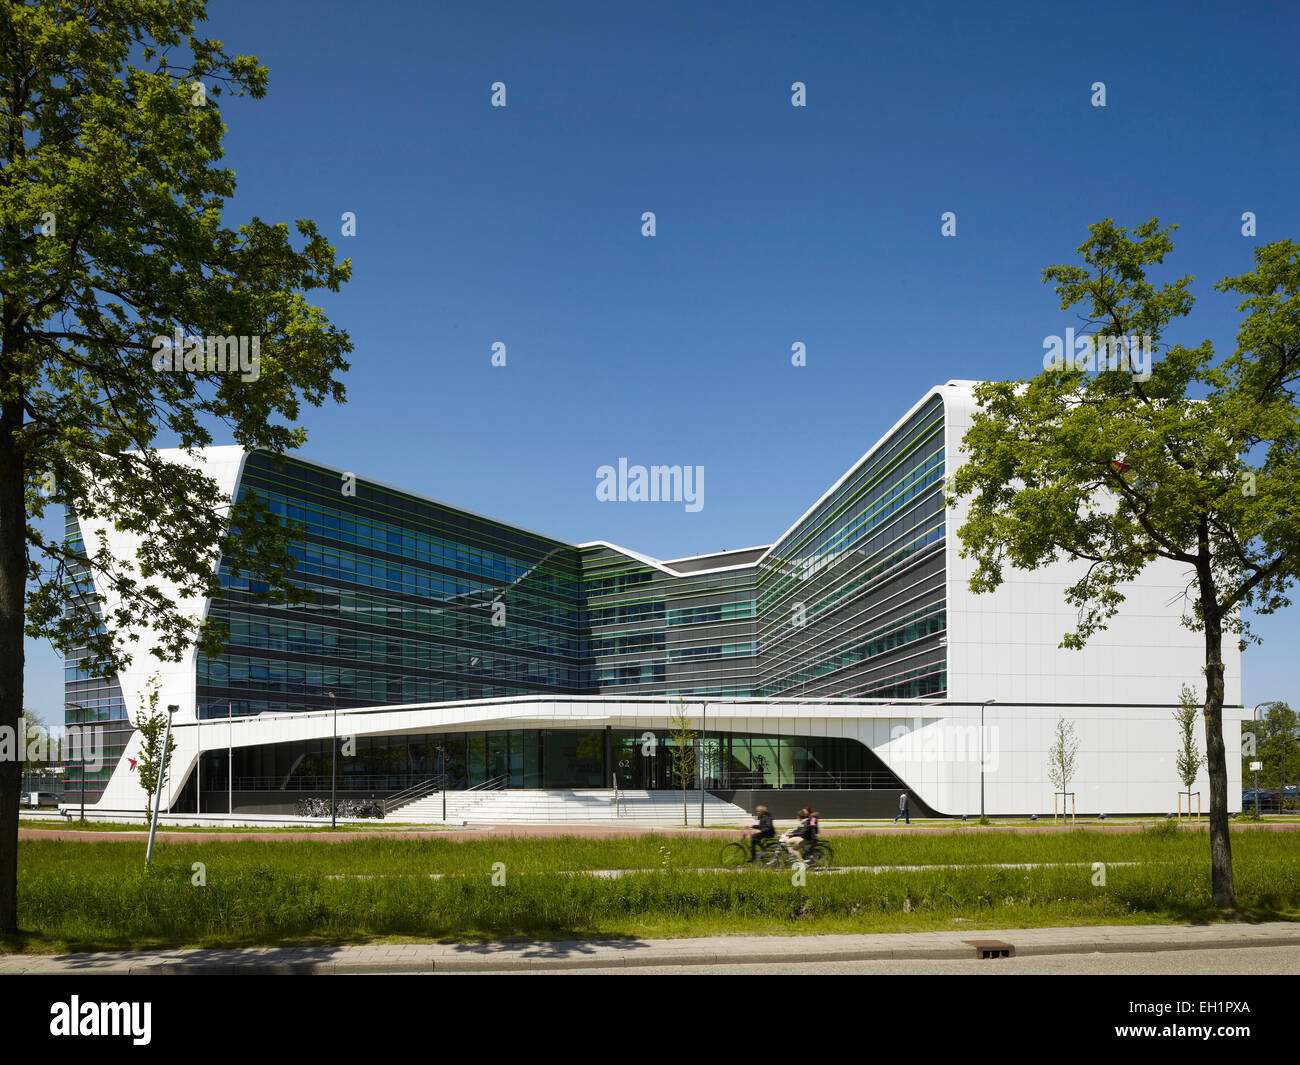 Front Elevation Of Building Part - 45: Overall Front Elevation Of Building Facade With Landscaped Cycle Path.  Astellas Offices - Mirai House, Leiden, Netherlands. Arch